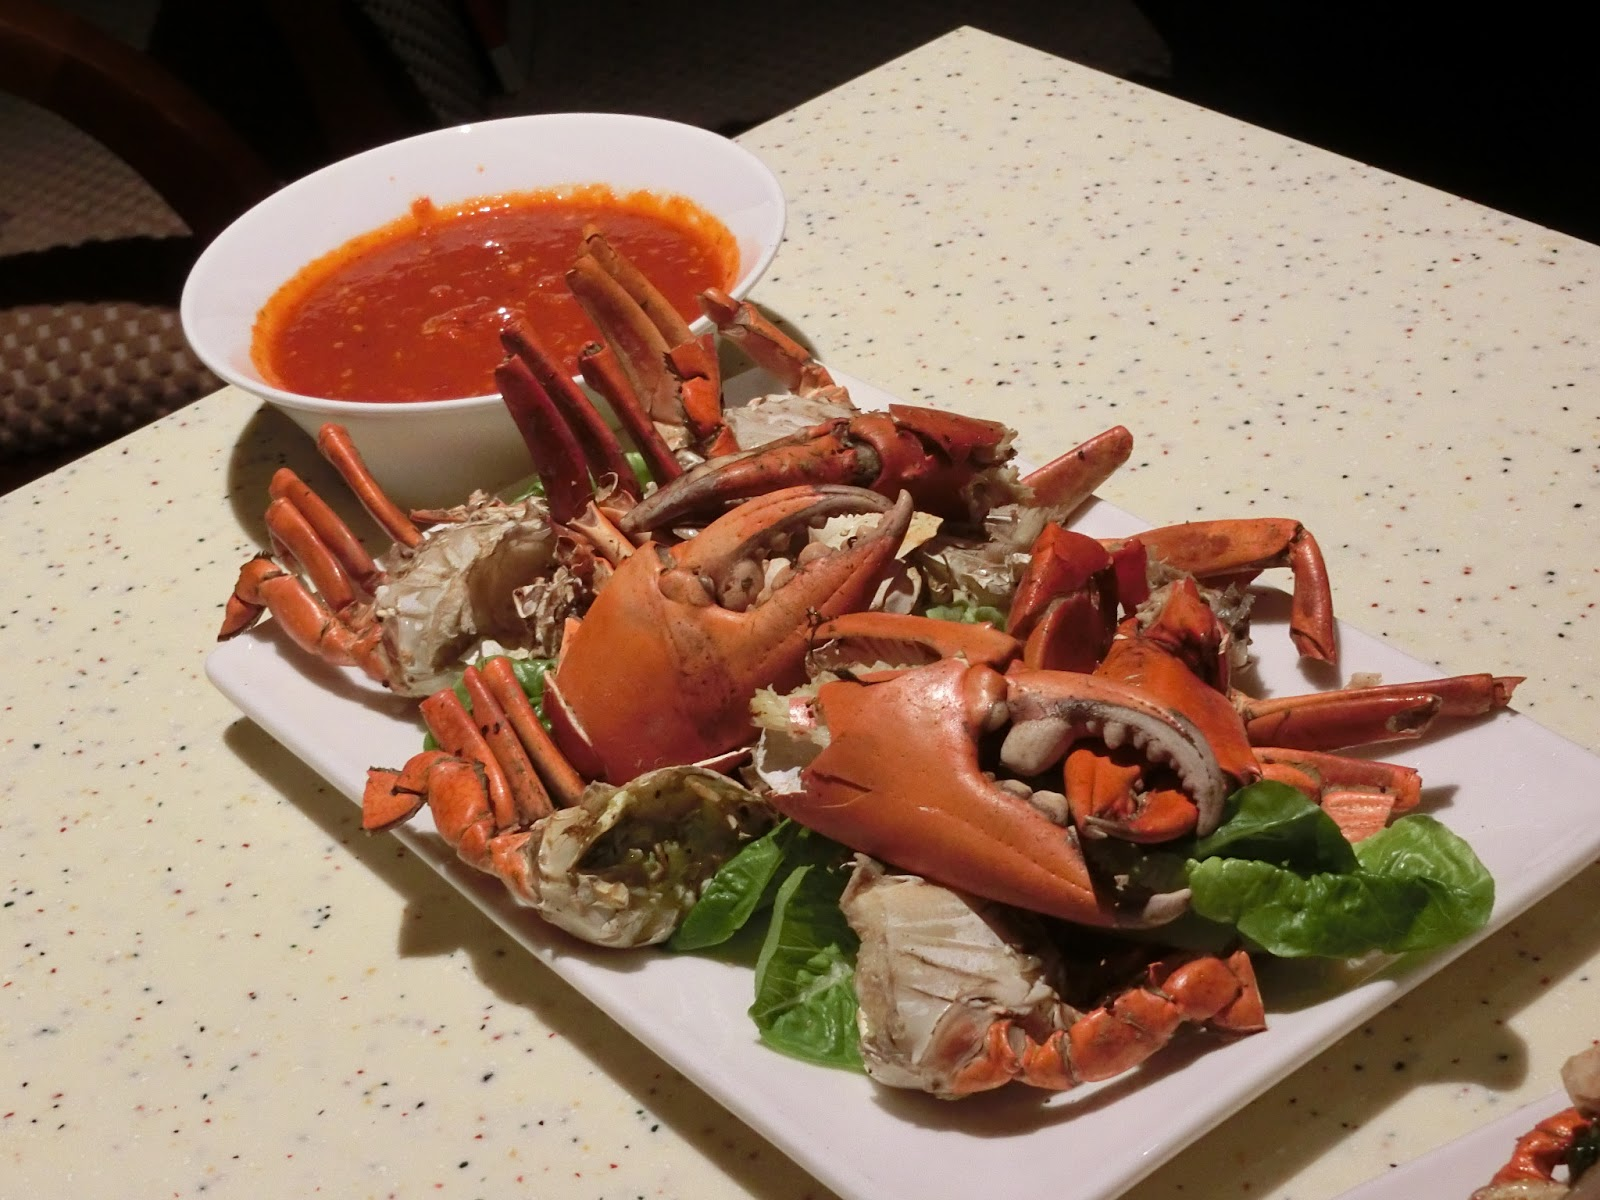 Parkroyal S Crab Feast Is Back Feast On As Many Crabs As: Singapore Food, Beauty And Lifestyle Blogger, Zerika Says